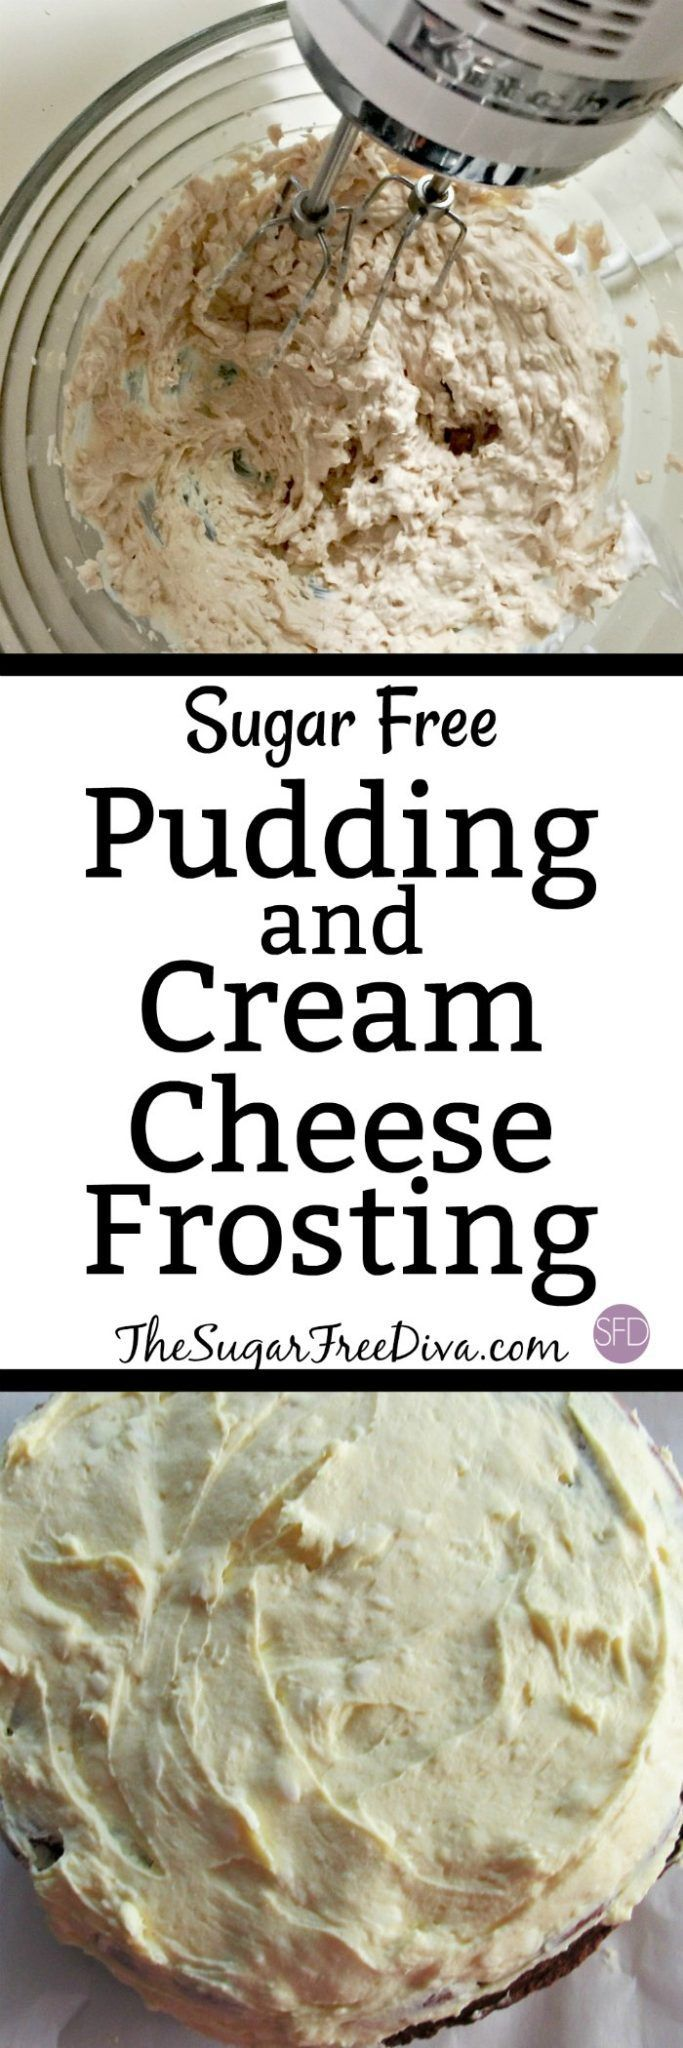 Sugar Free Pudding and Cream Cheese Frosting Recipe